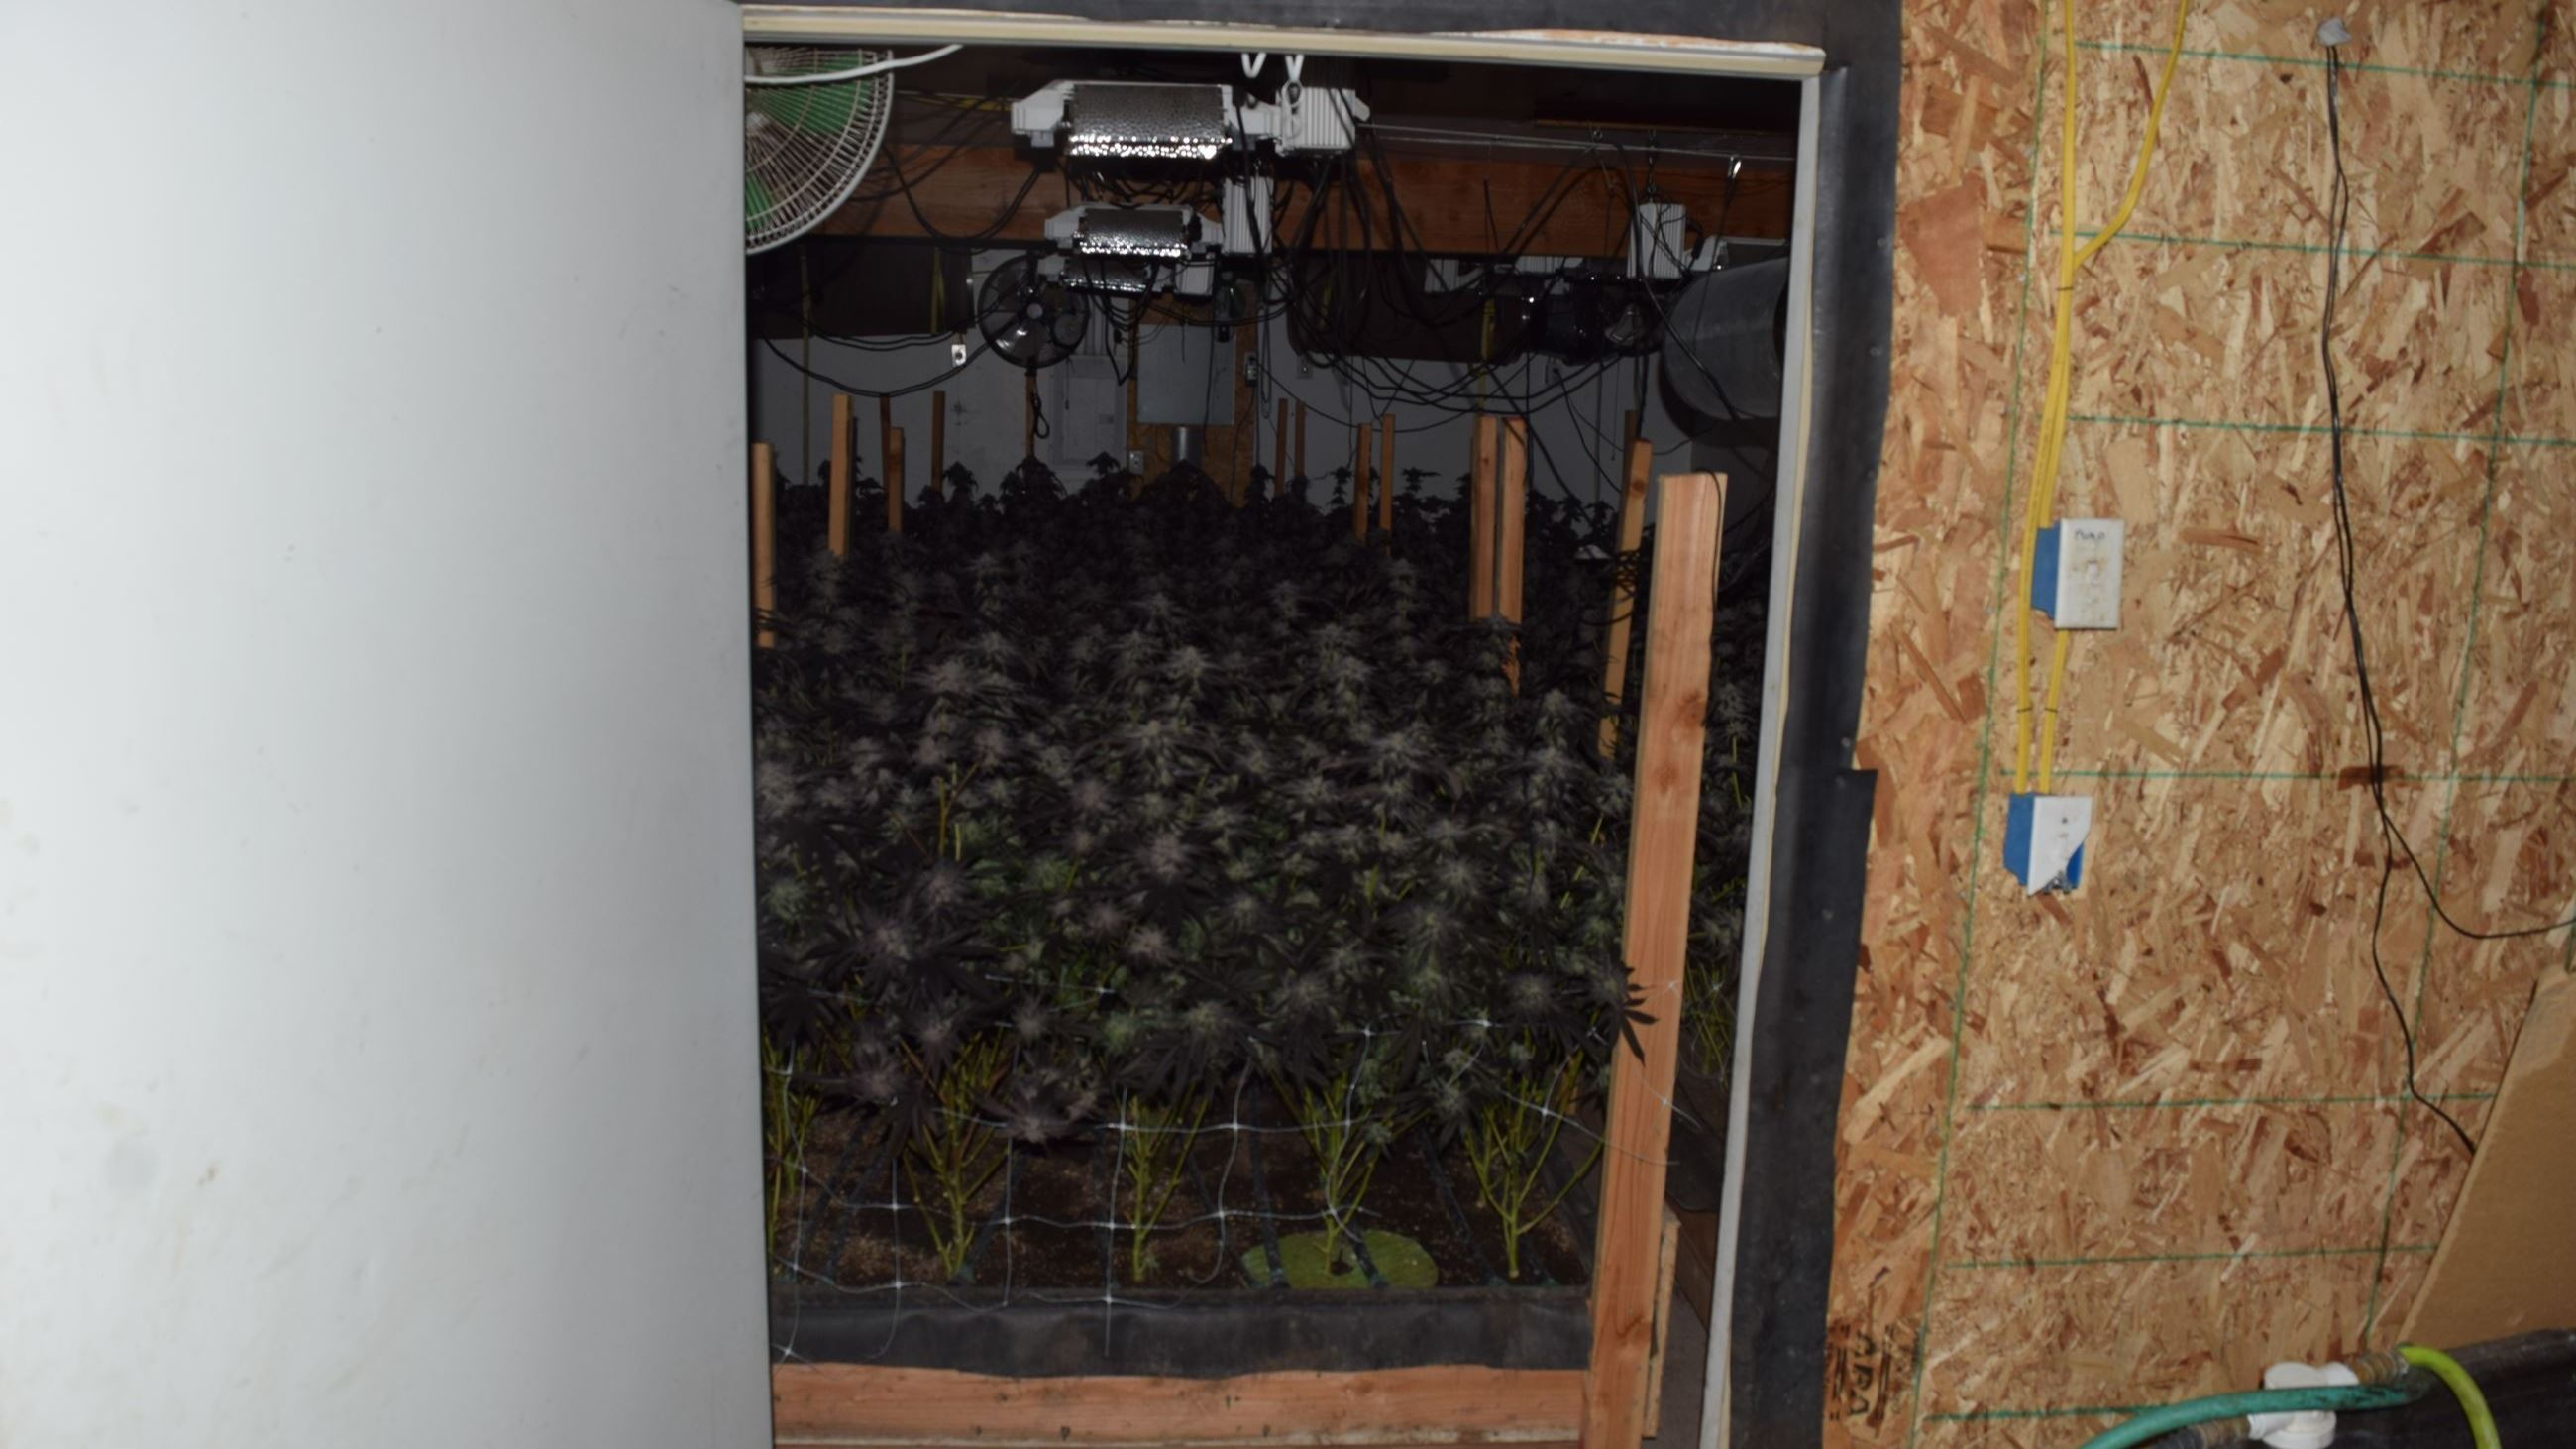 Growing marijuana inside a storage unit